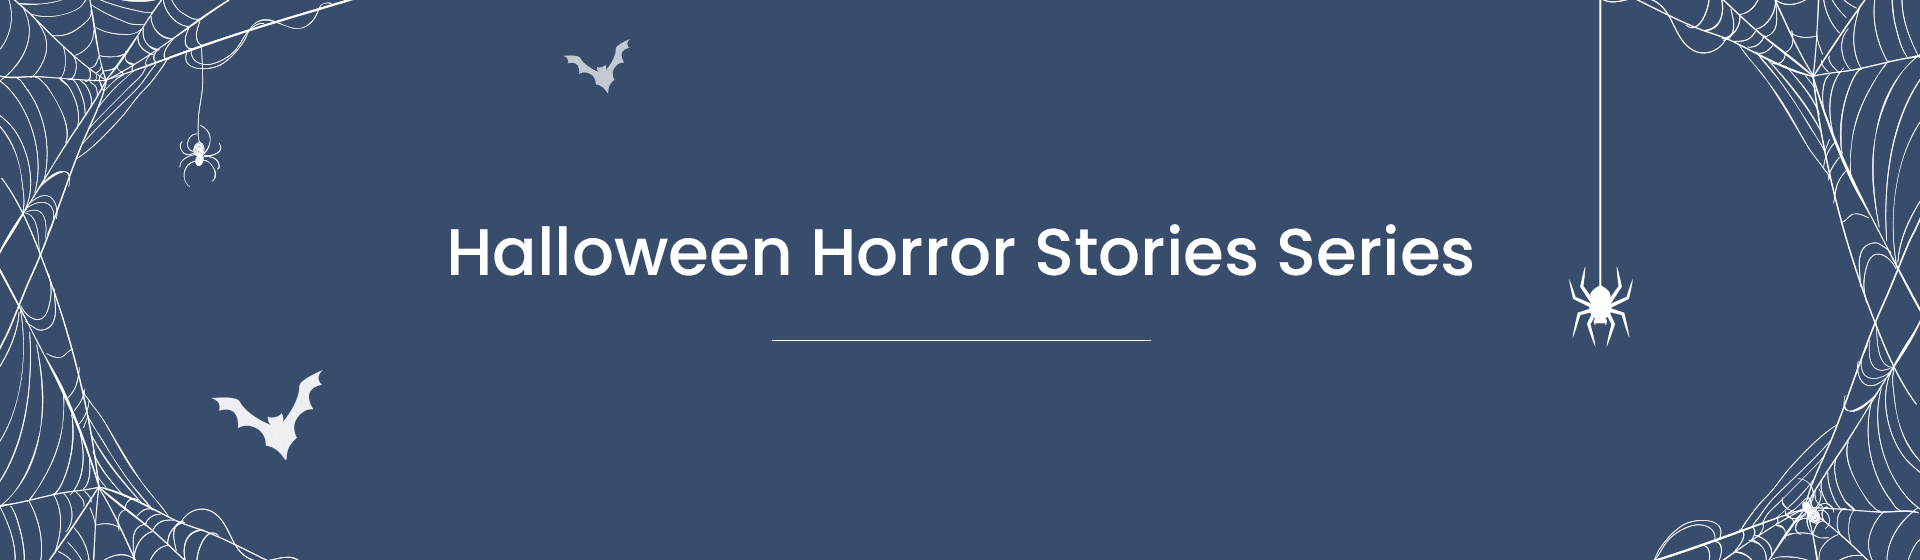 Halloween Horror Stories Series banner